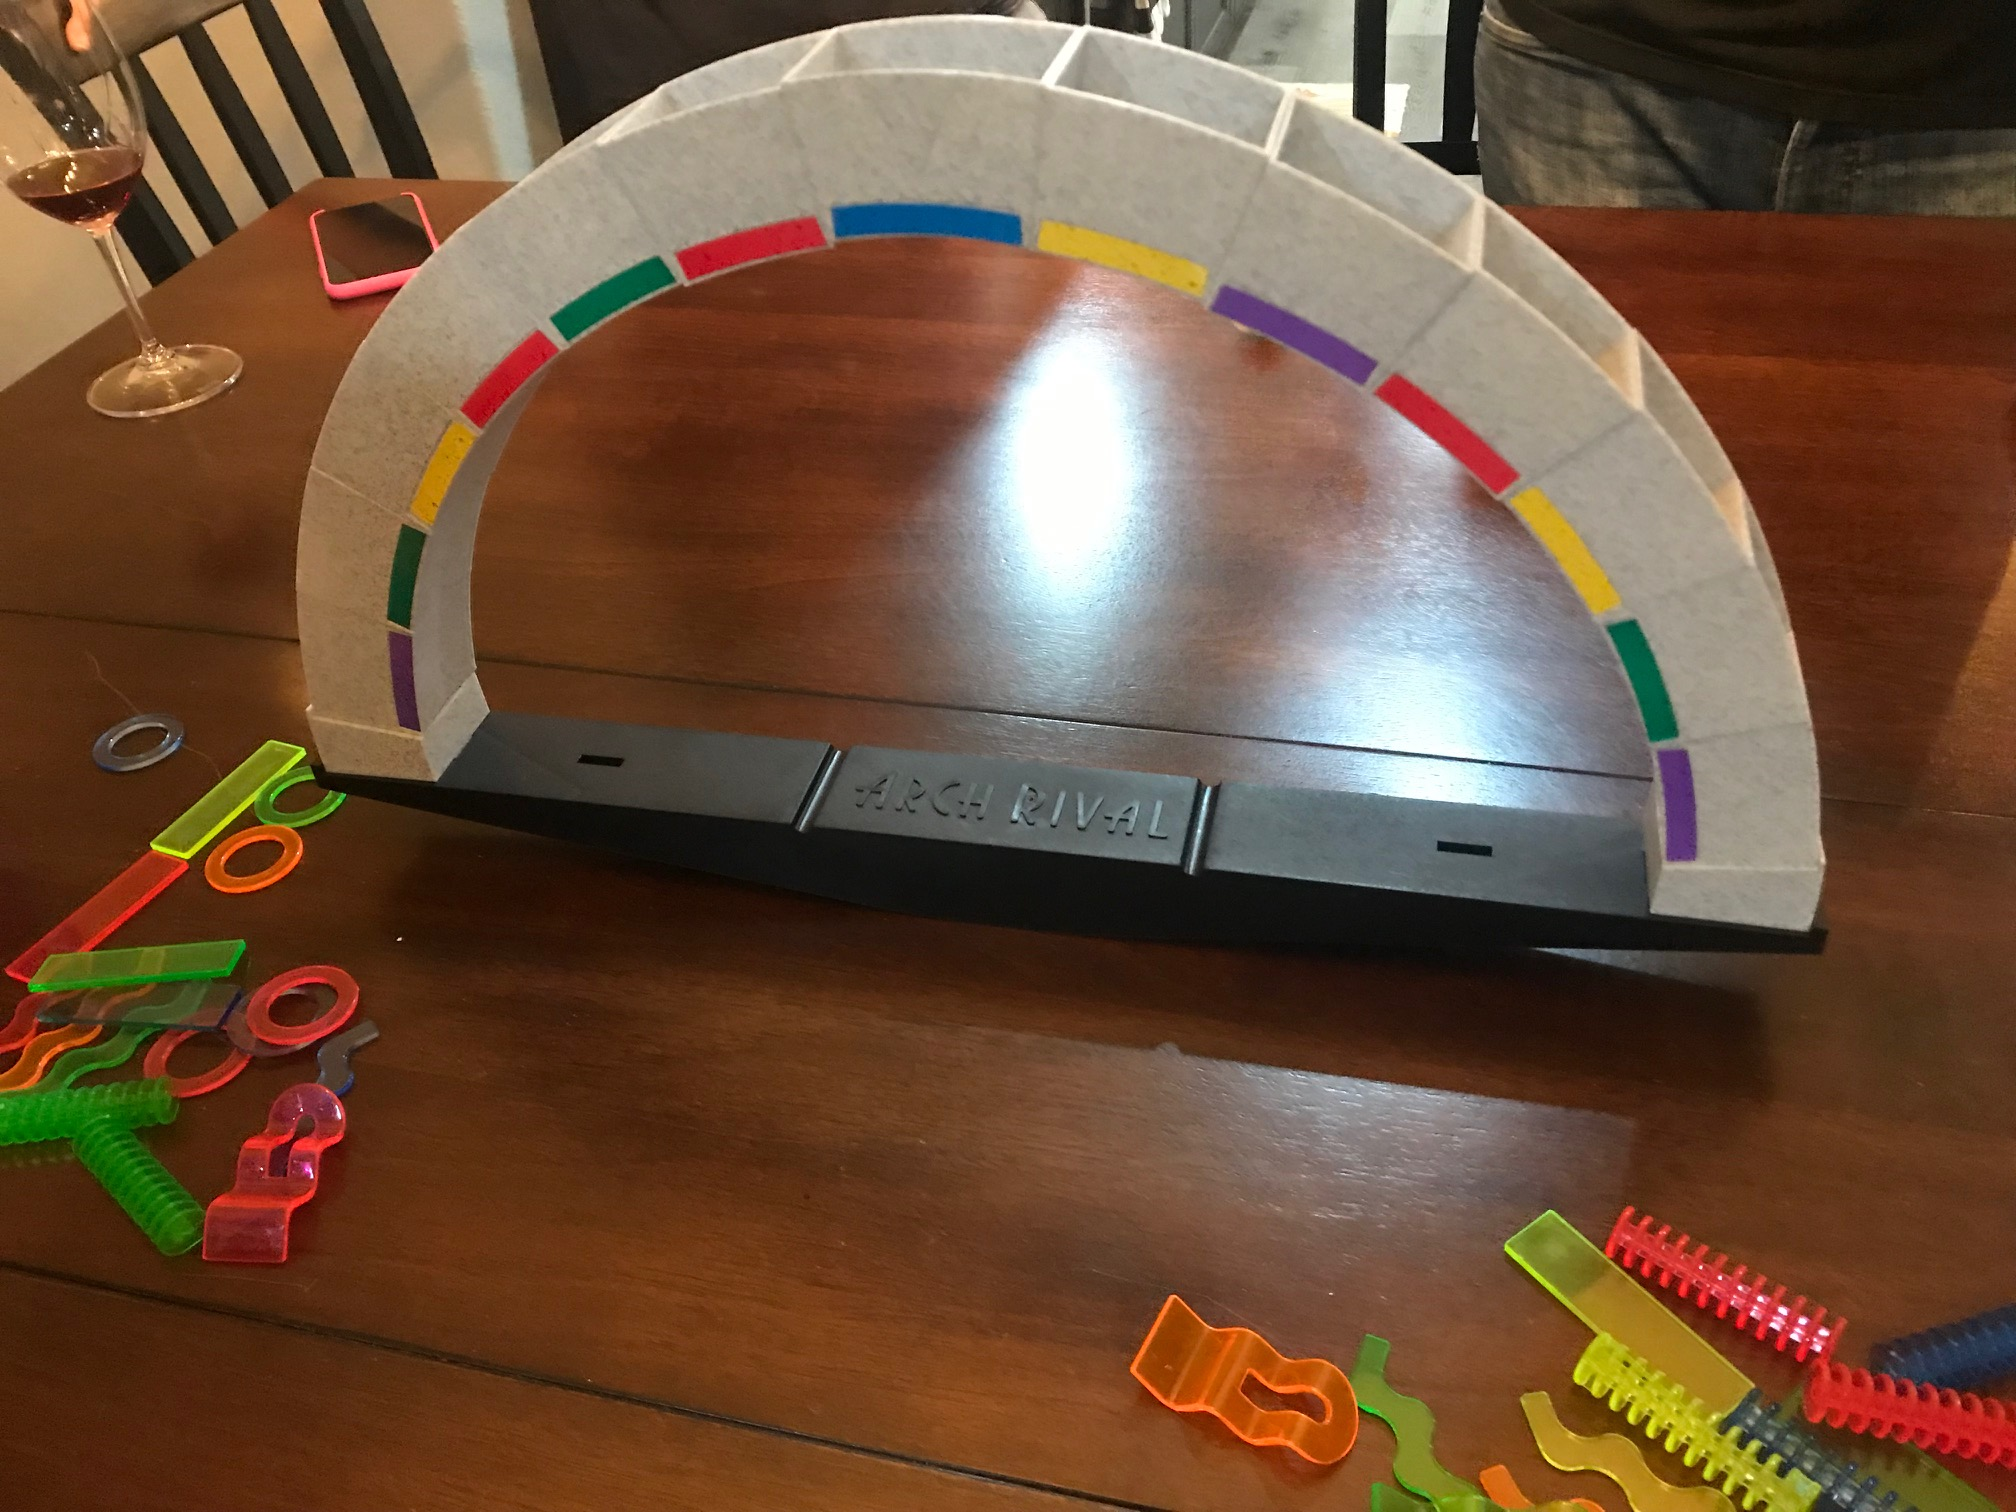 Ready for play is the arch with empty compartments